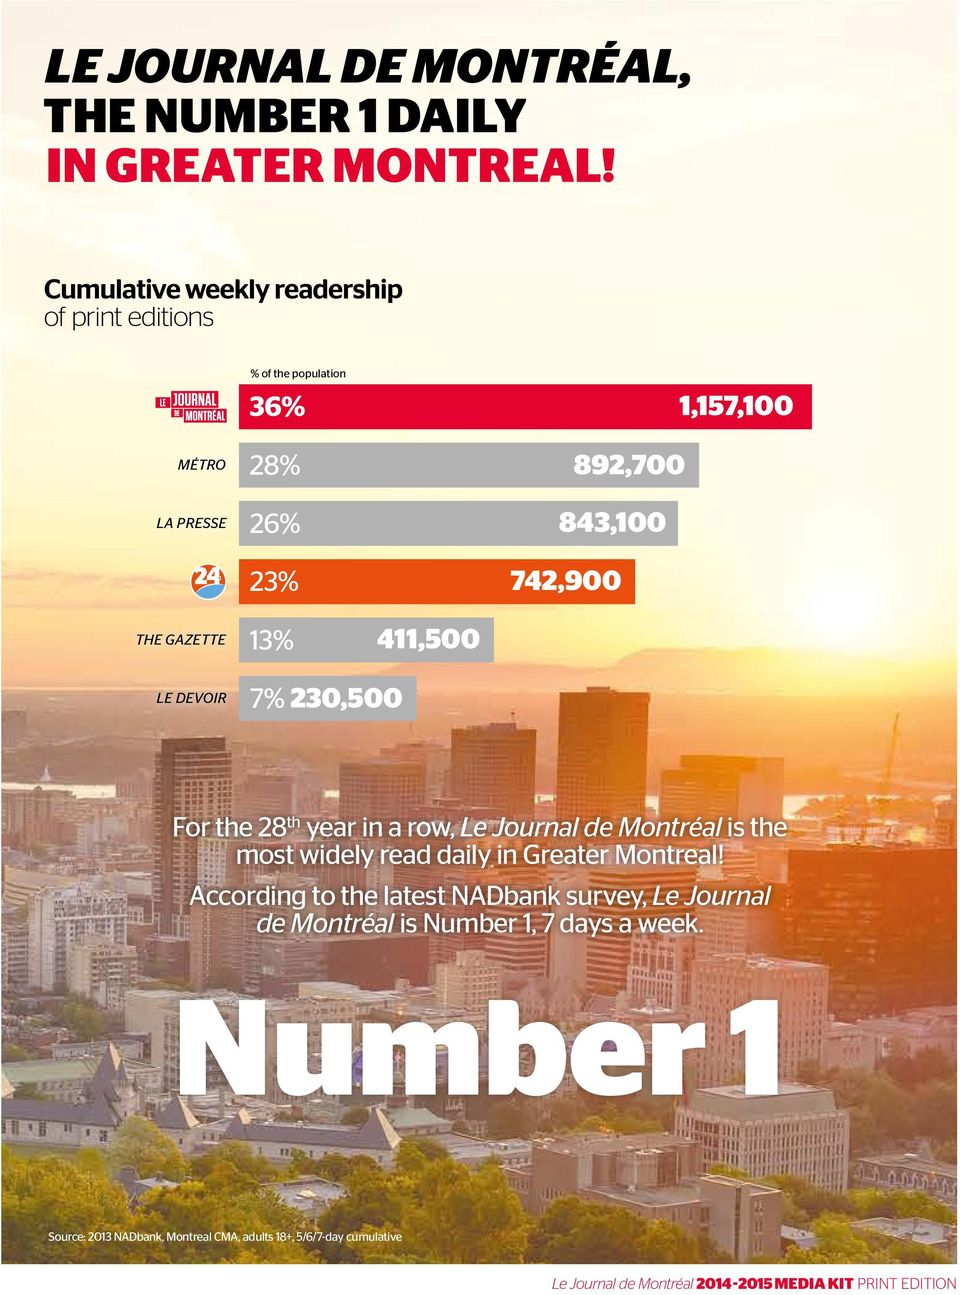 742,900 THE GAZETTE 13% 411,500 LE DEVOIR 7% 230,500 For the 28 th year in a row, Le Journal de Montréal is the most widely read